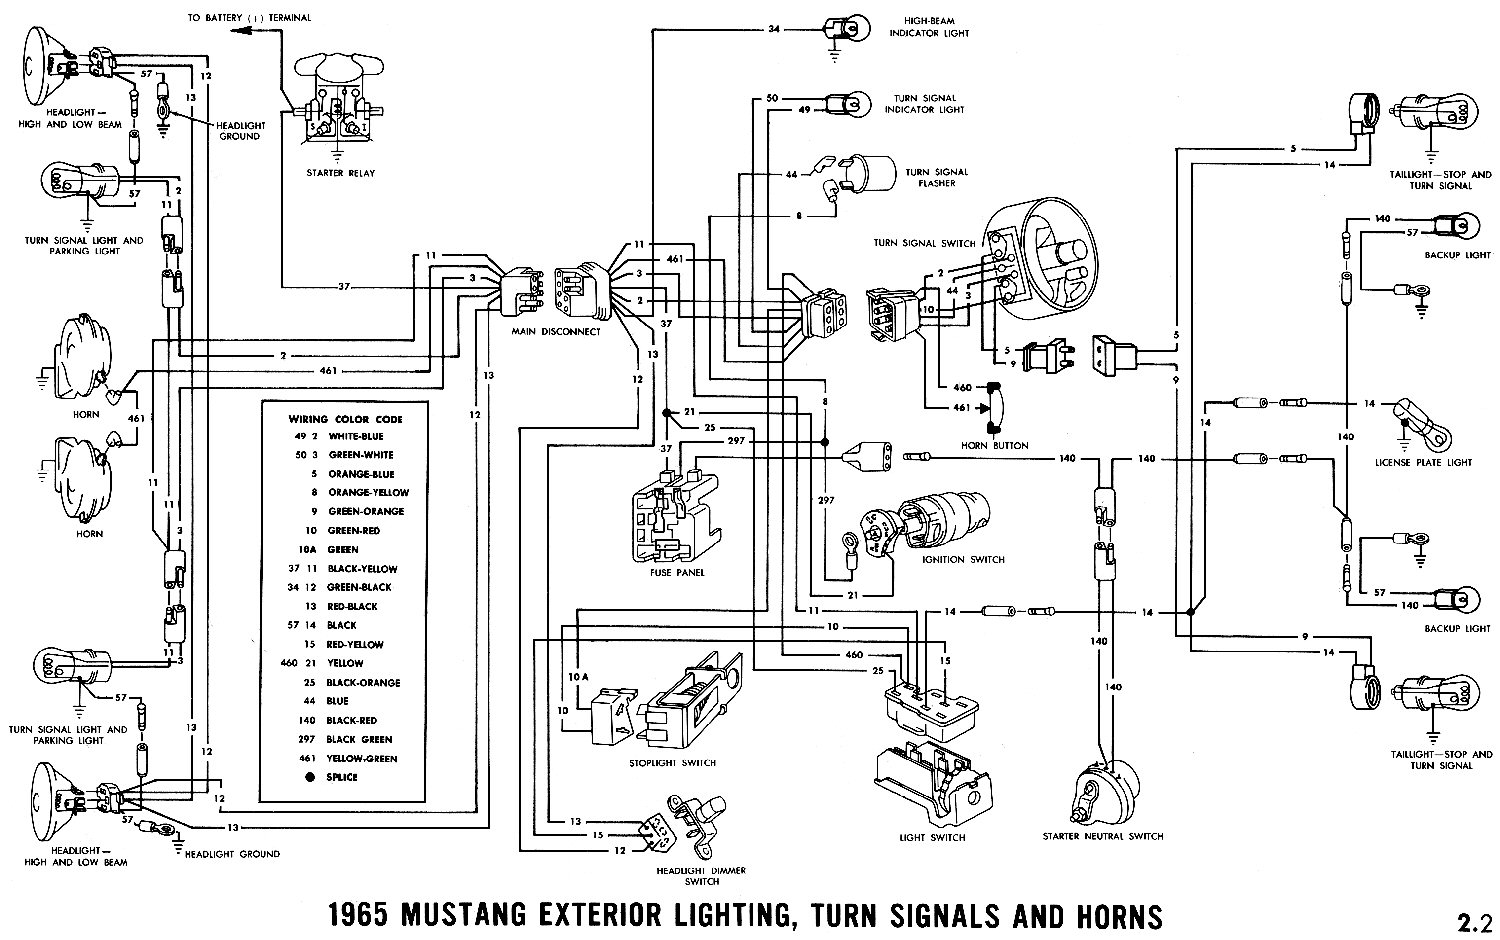 ford falcon el stereo wiring diagram wiring diagrams and schematics bf falcon wiring diagram diagrams schematics ideas